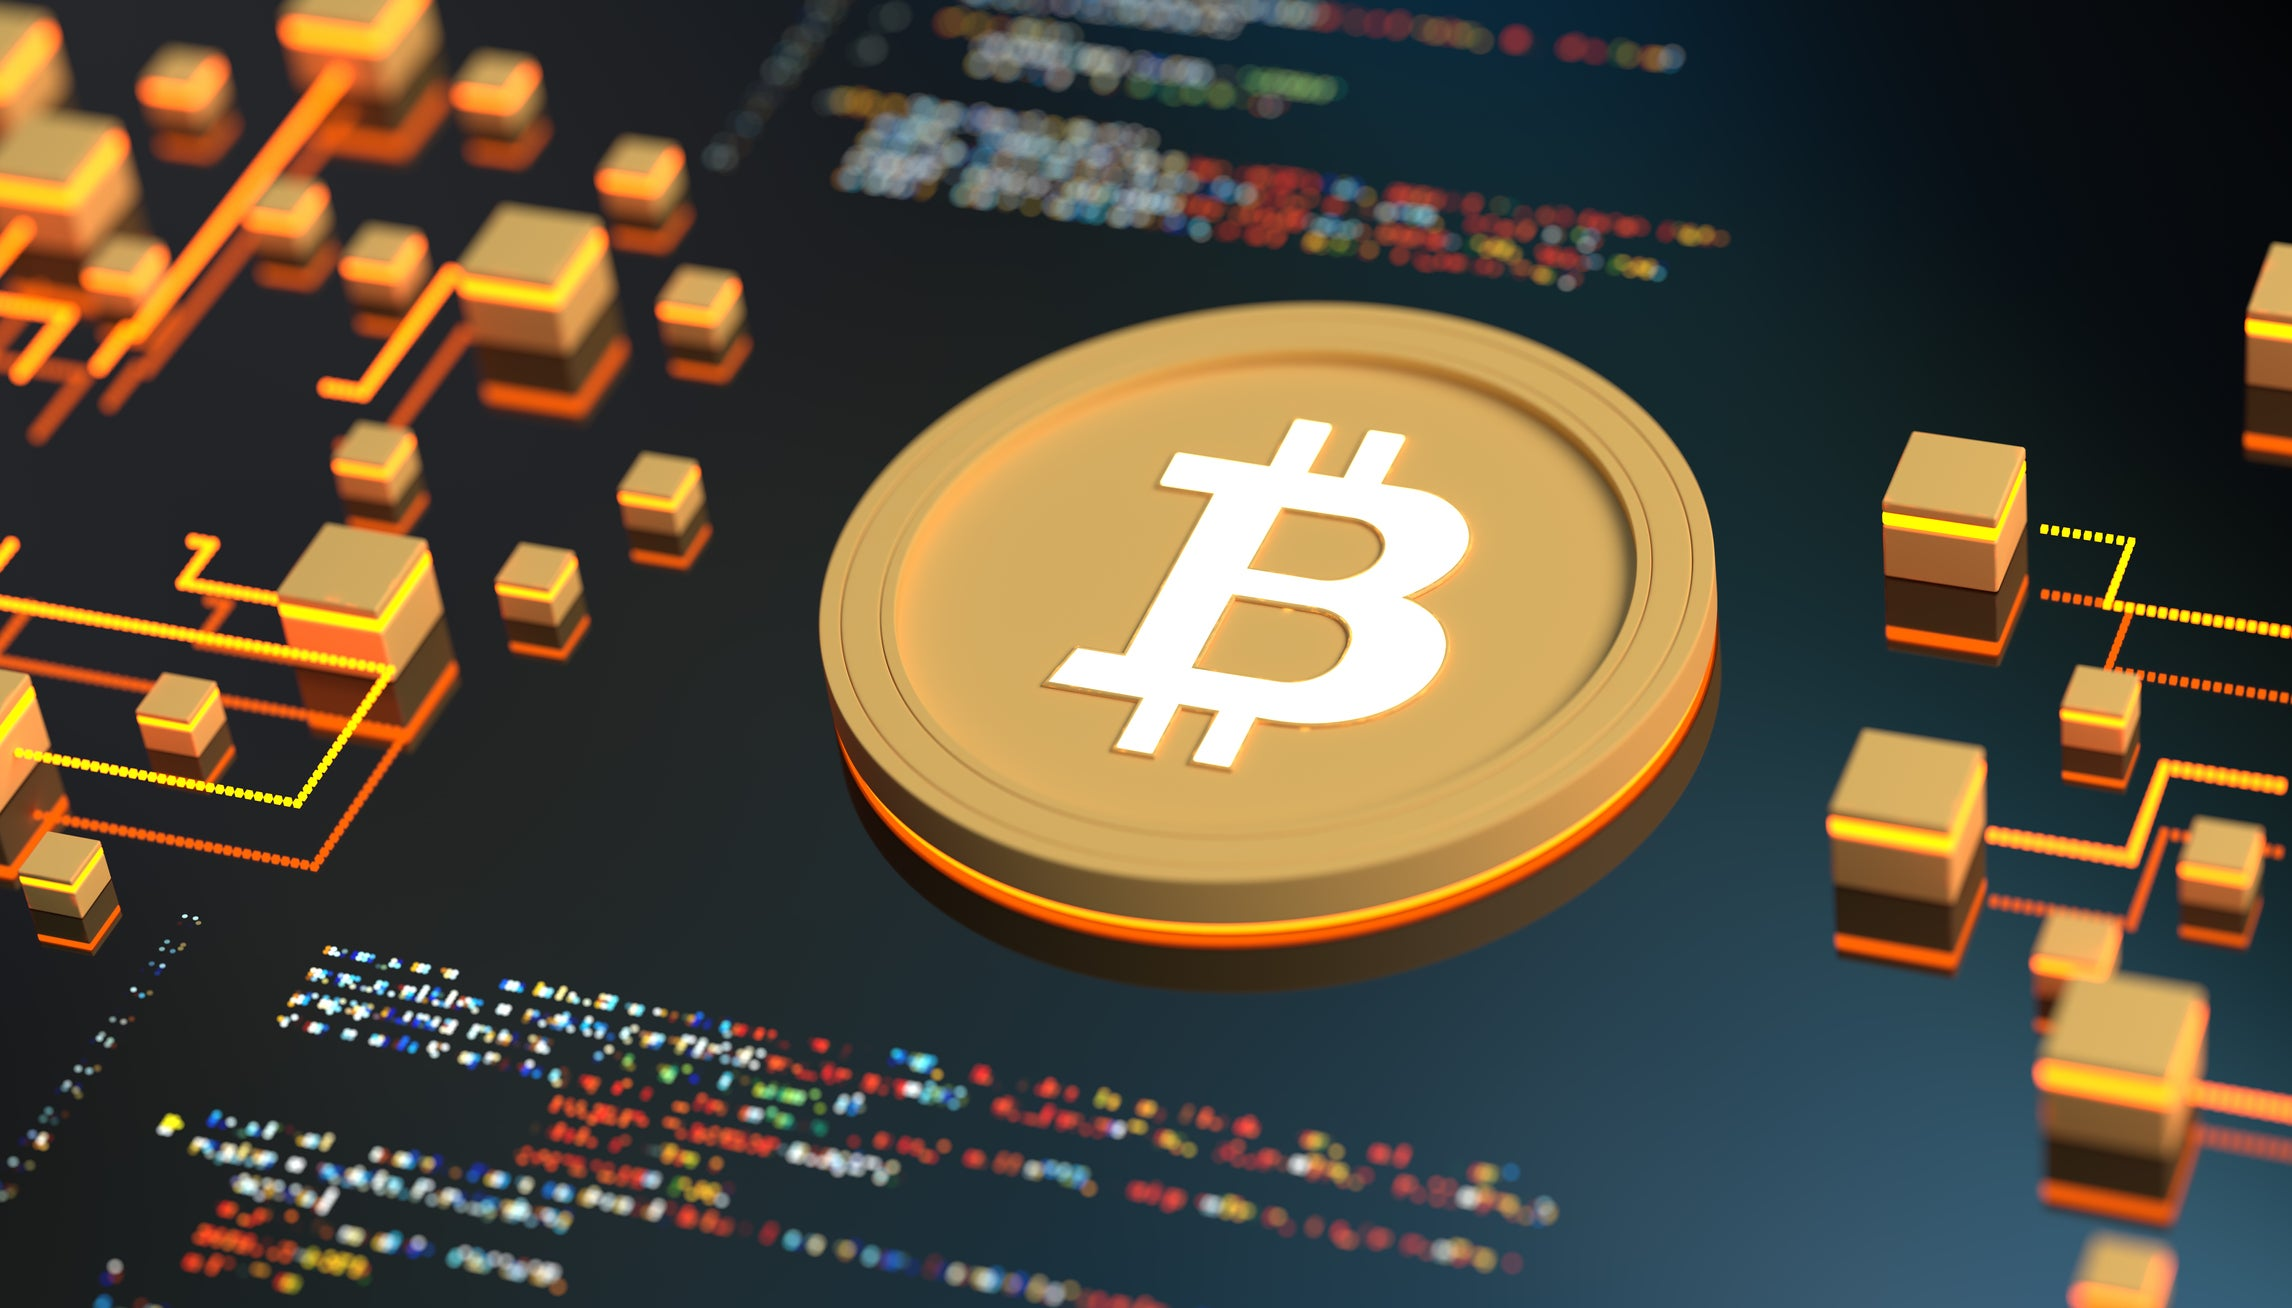 Is Bitcoin a Good Long-Term Investment? | The Motley Fool